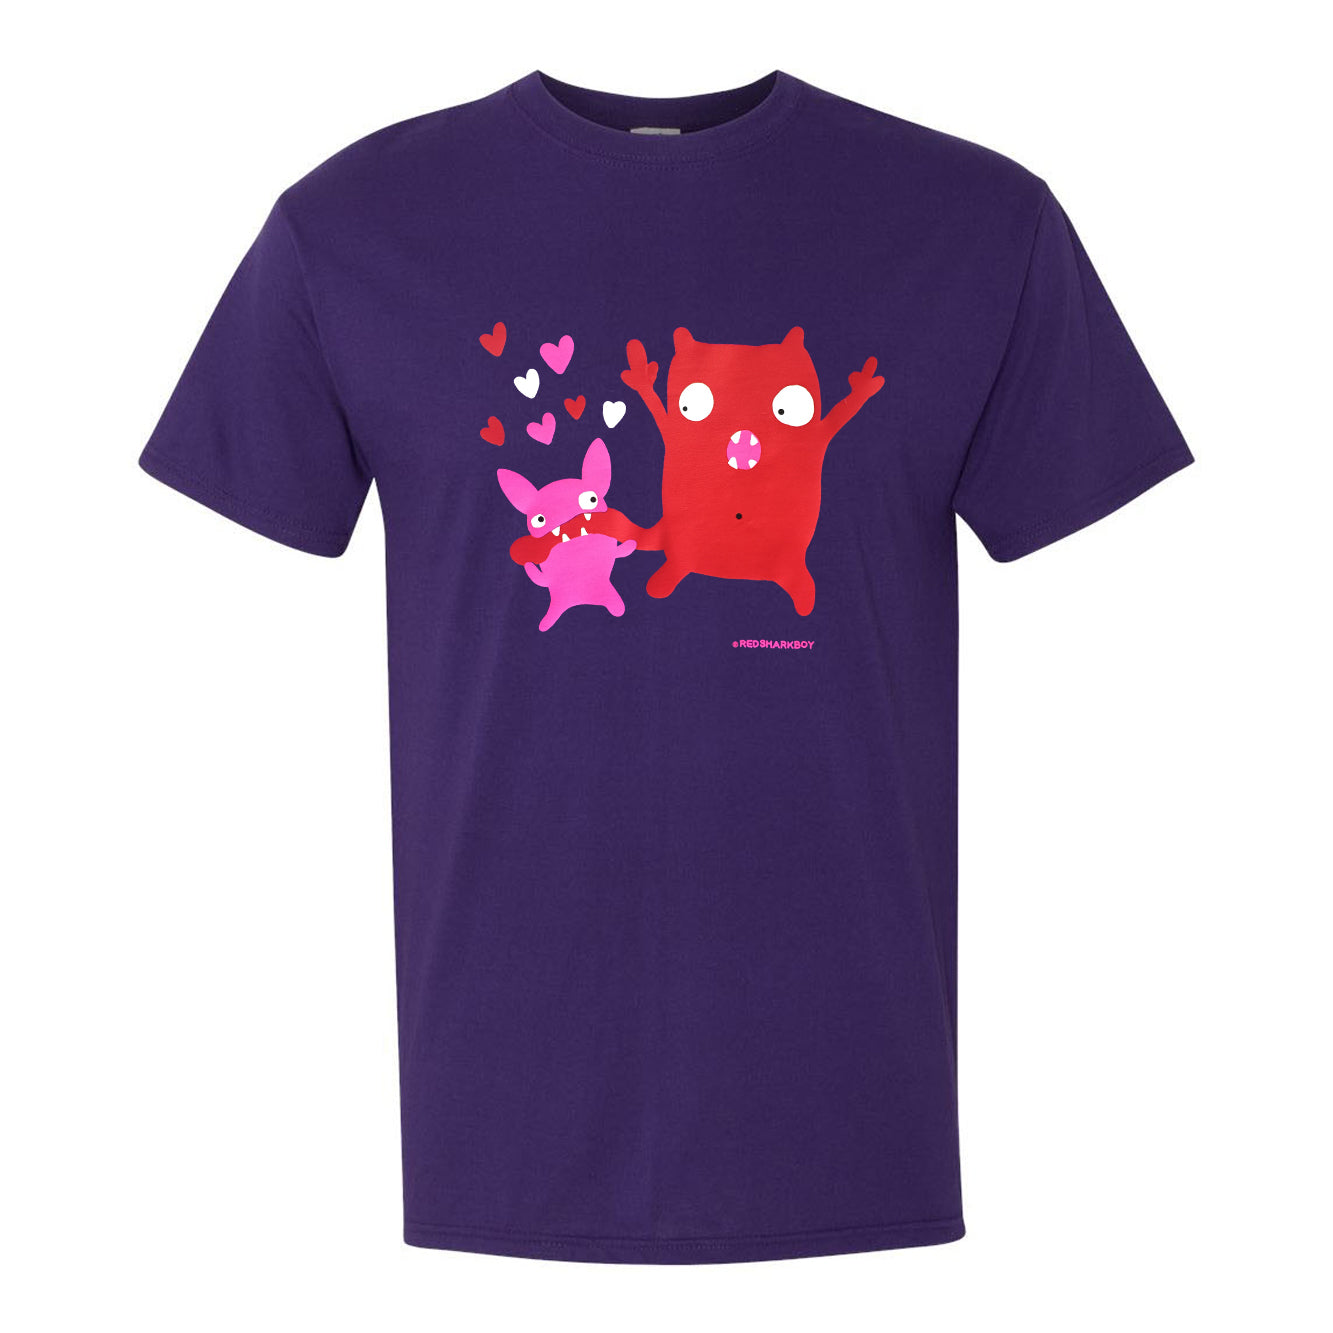 Love Bites T-Shirt